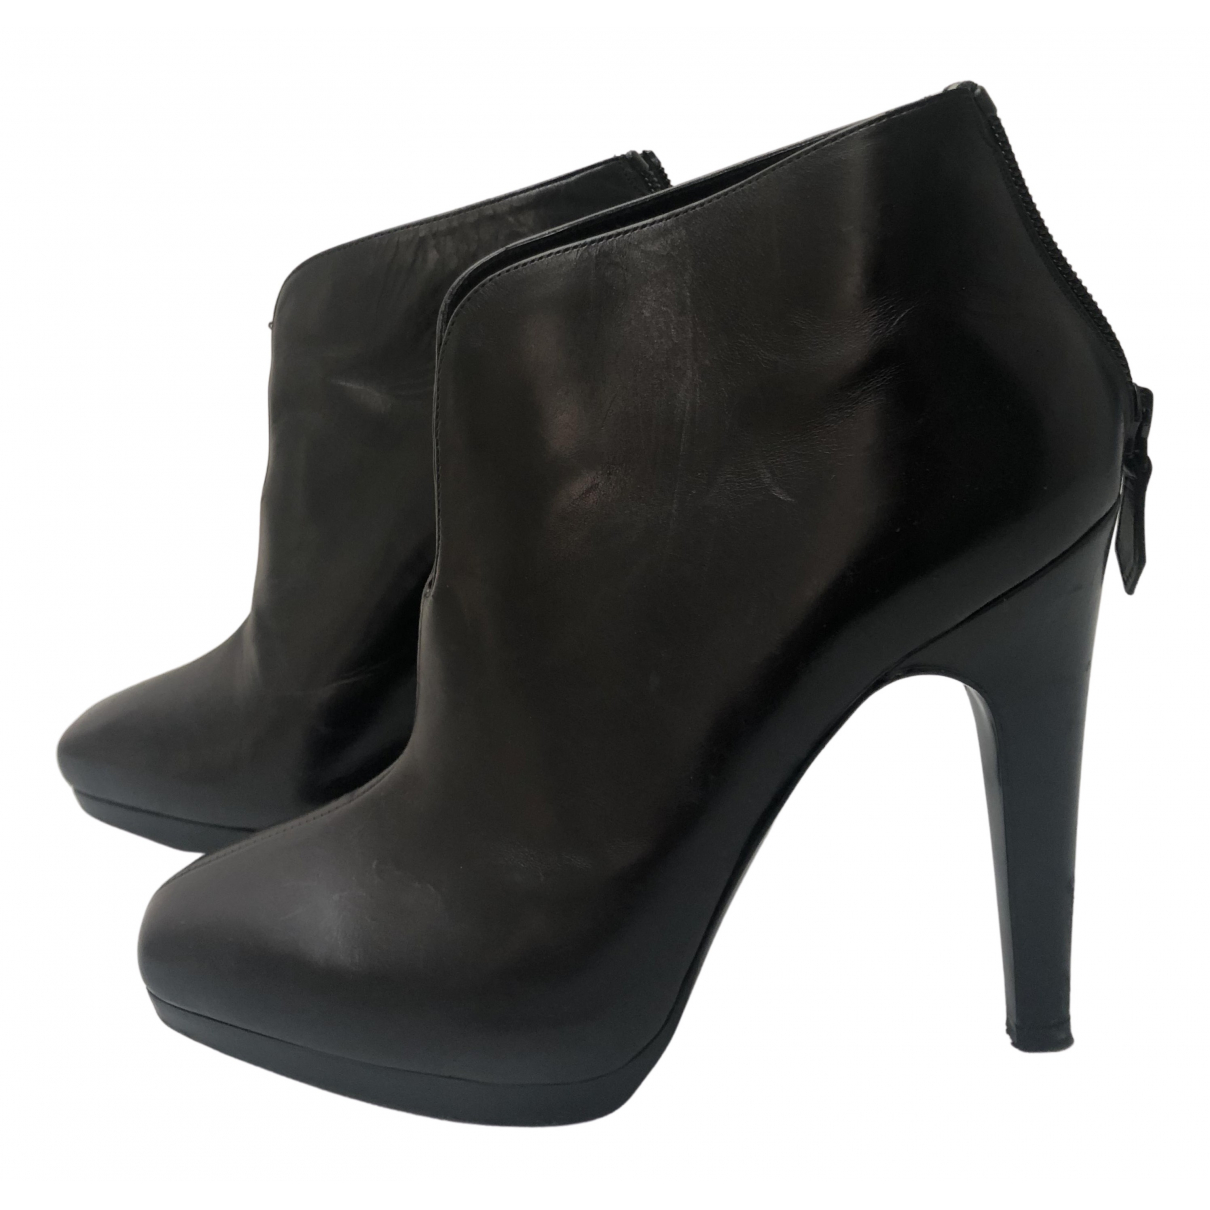 Hermès N Black Leather Ankle boots for Women 36 EU